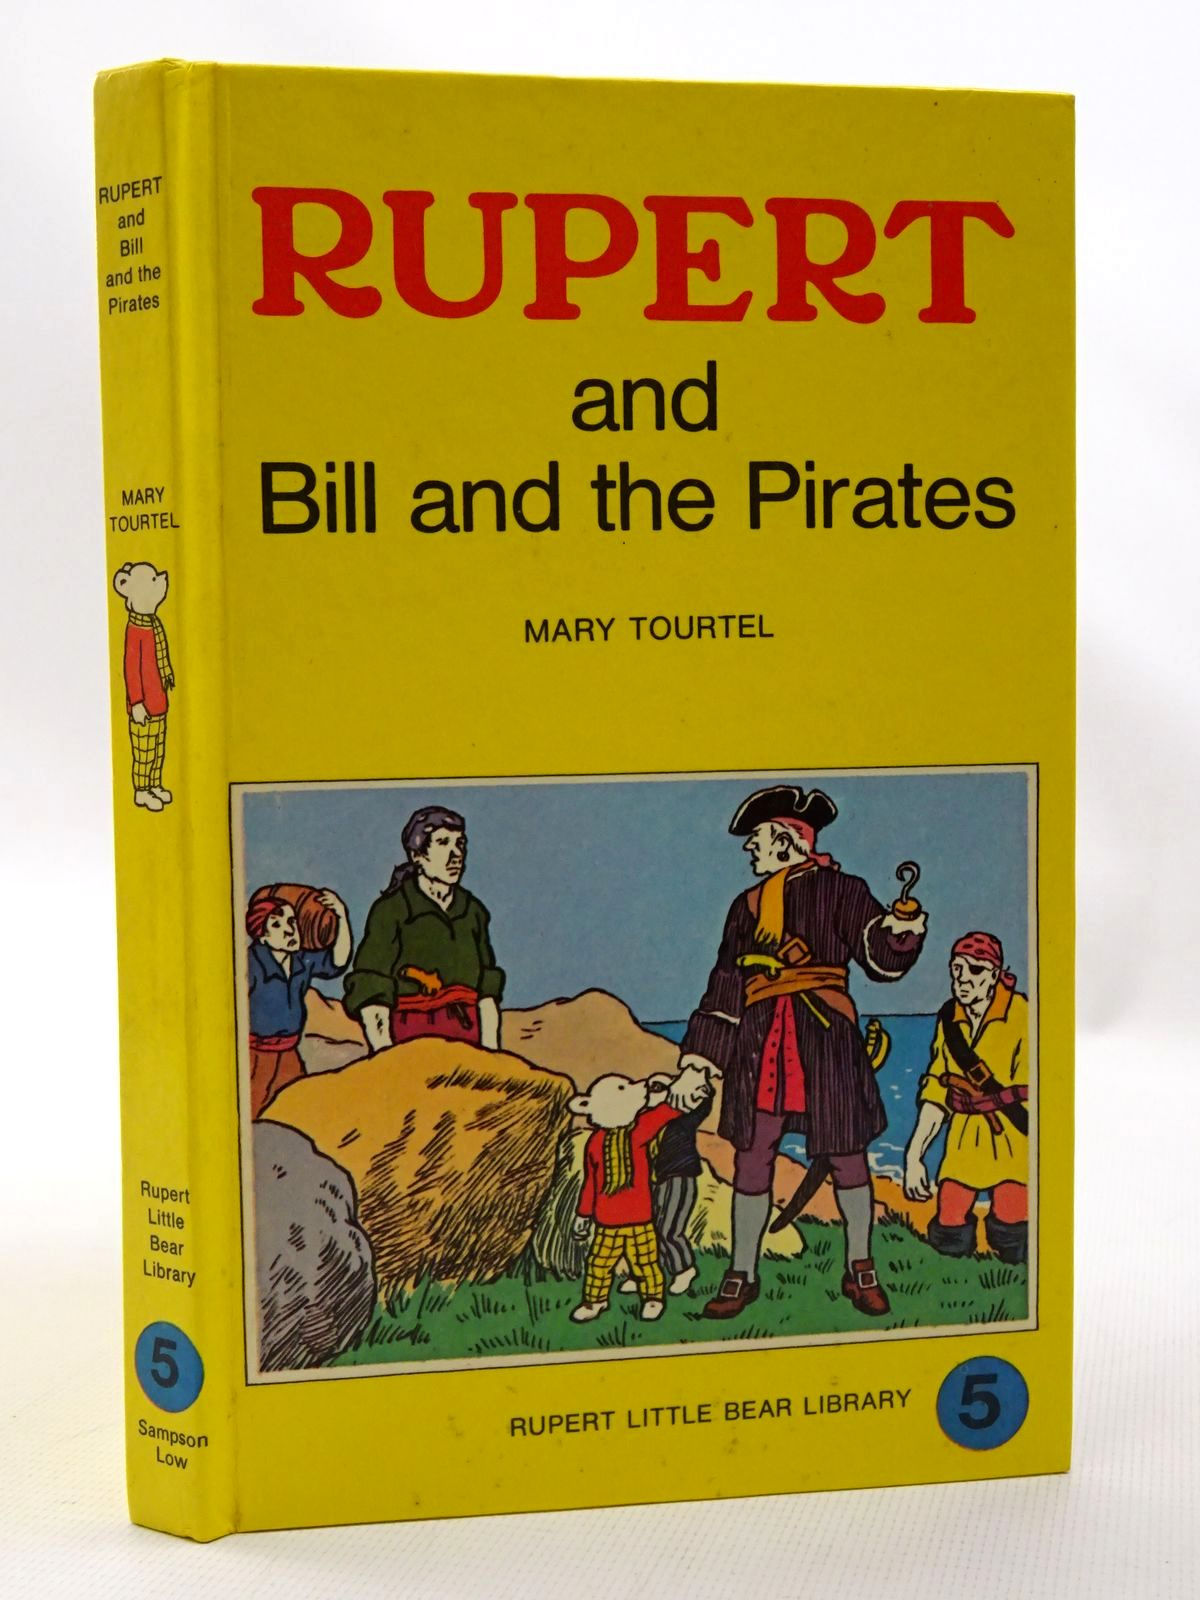 Photo of RUPERT AND BILL AND THE PIRATES - RUPERT LITTLE BEAR LIBRARY No. 5 (WOOLWORTH) written by Tourtel, Mary published by Sampson Low, Marston & Co. Ltd. (STOCK CODE: 1610118)  for sale by Stella & Rose's Books